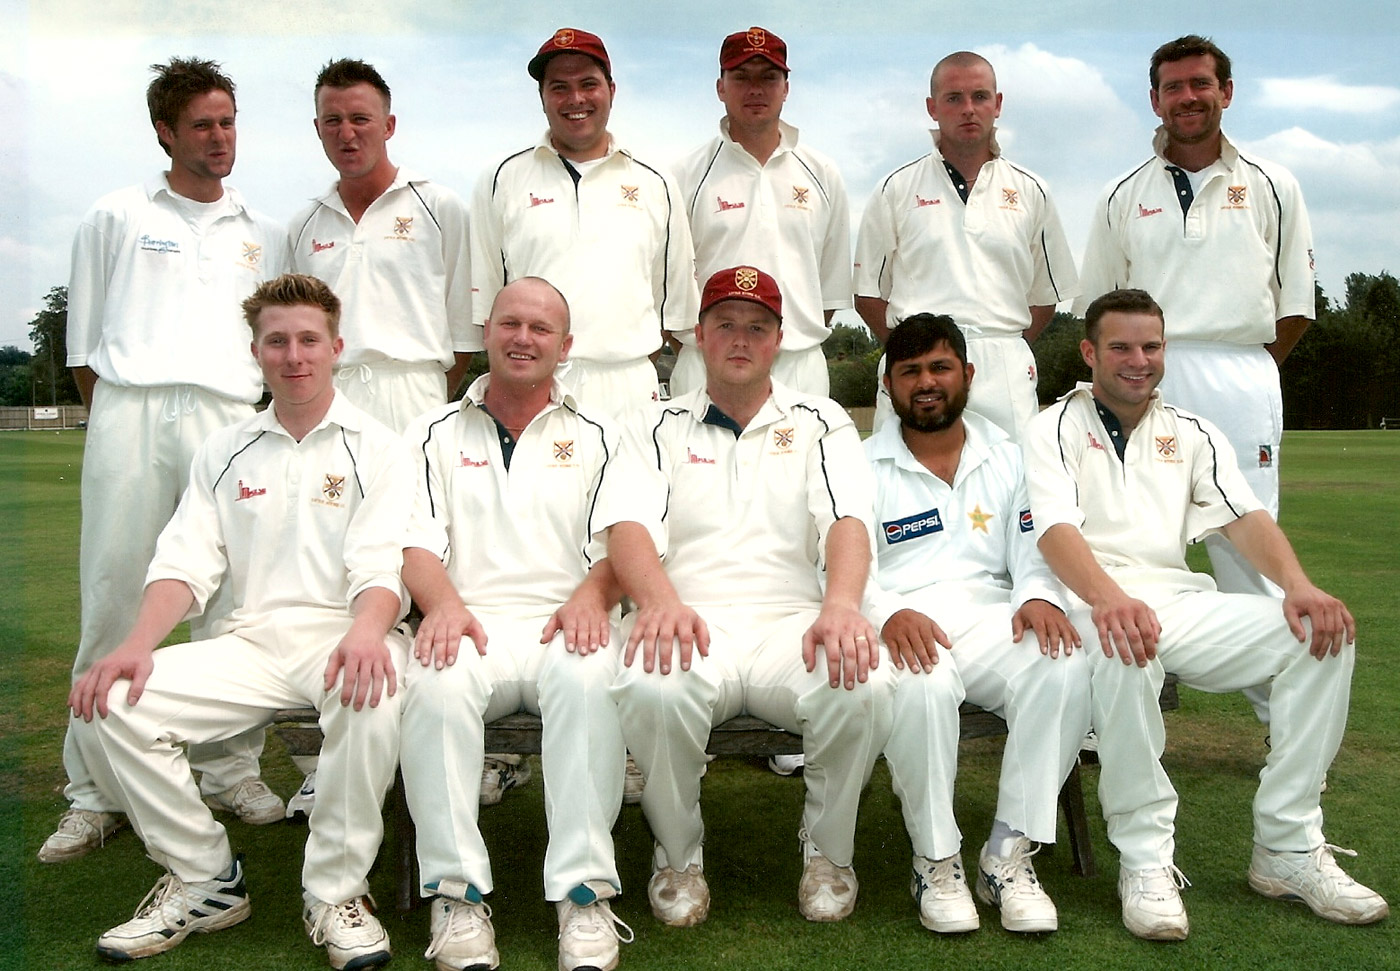 Mushtaq Ahmed (front row, second from right) with the Little Stoke 1st XI that won the North Staffordshire & South Cheshire League in 2002